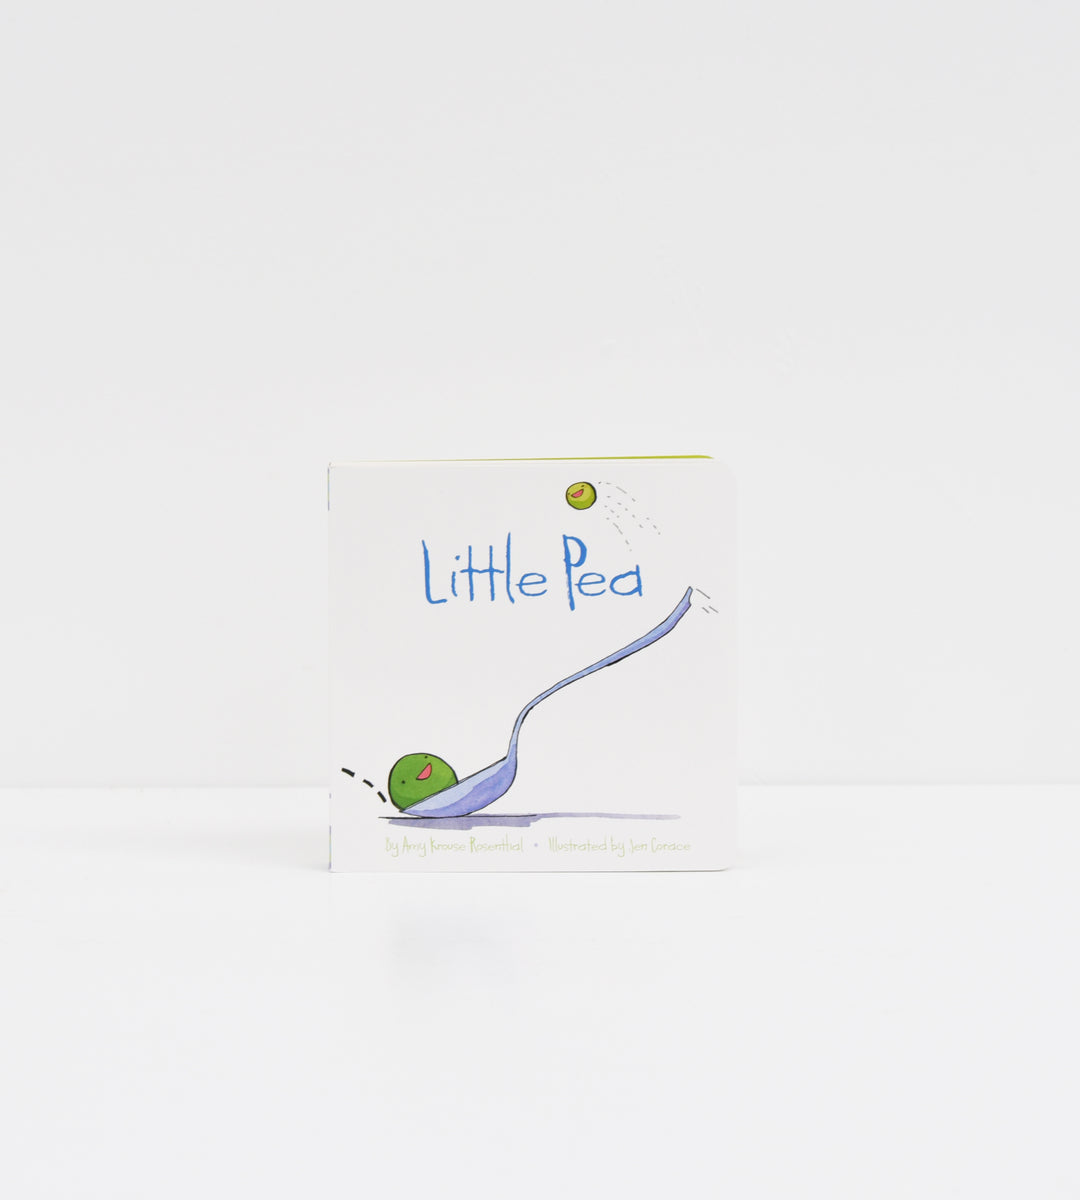 Little Pea | by Amy Krouse Rosenthal